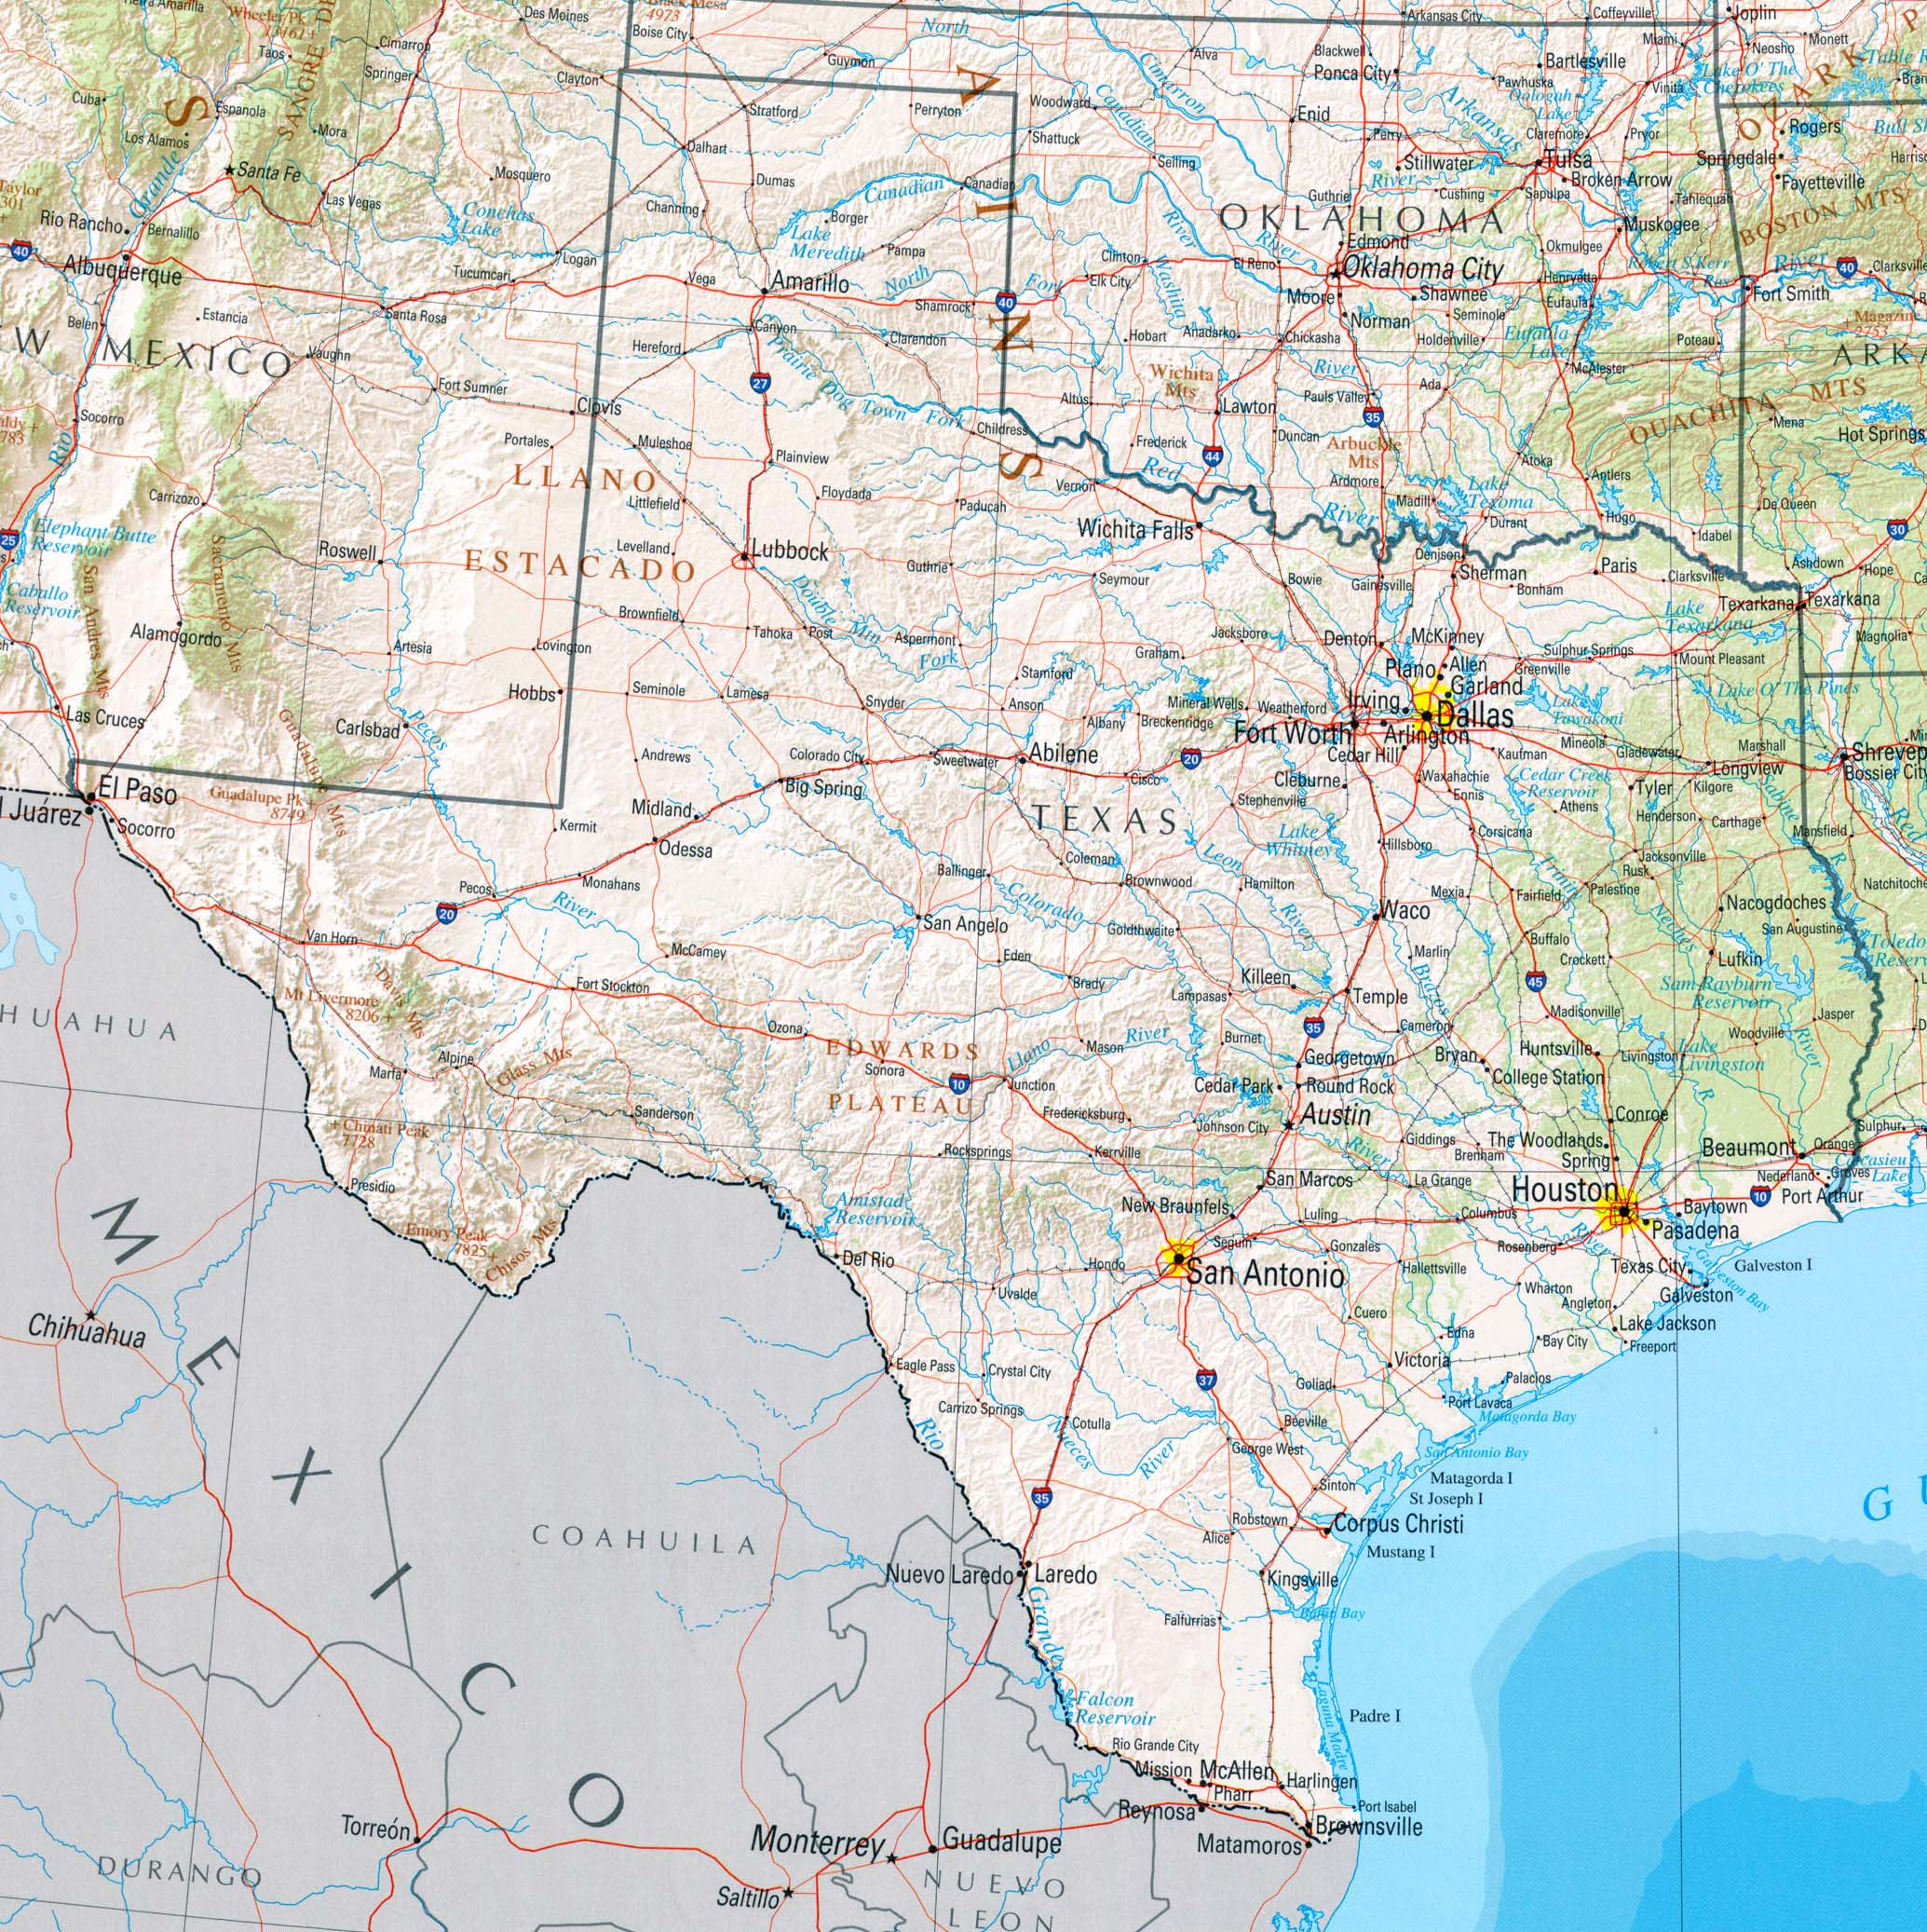 Statemaster - Statistics On Texas. Facts And Figures, Stats And - Texas Crime Map